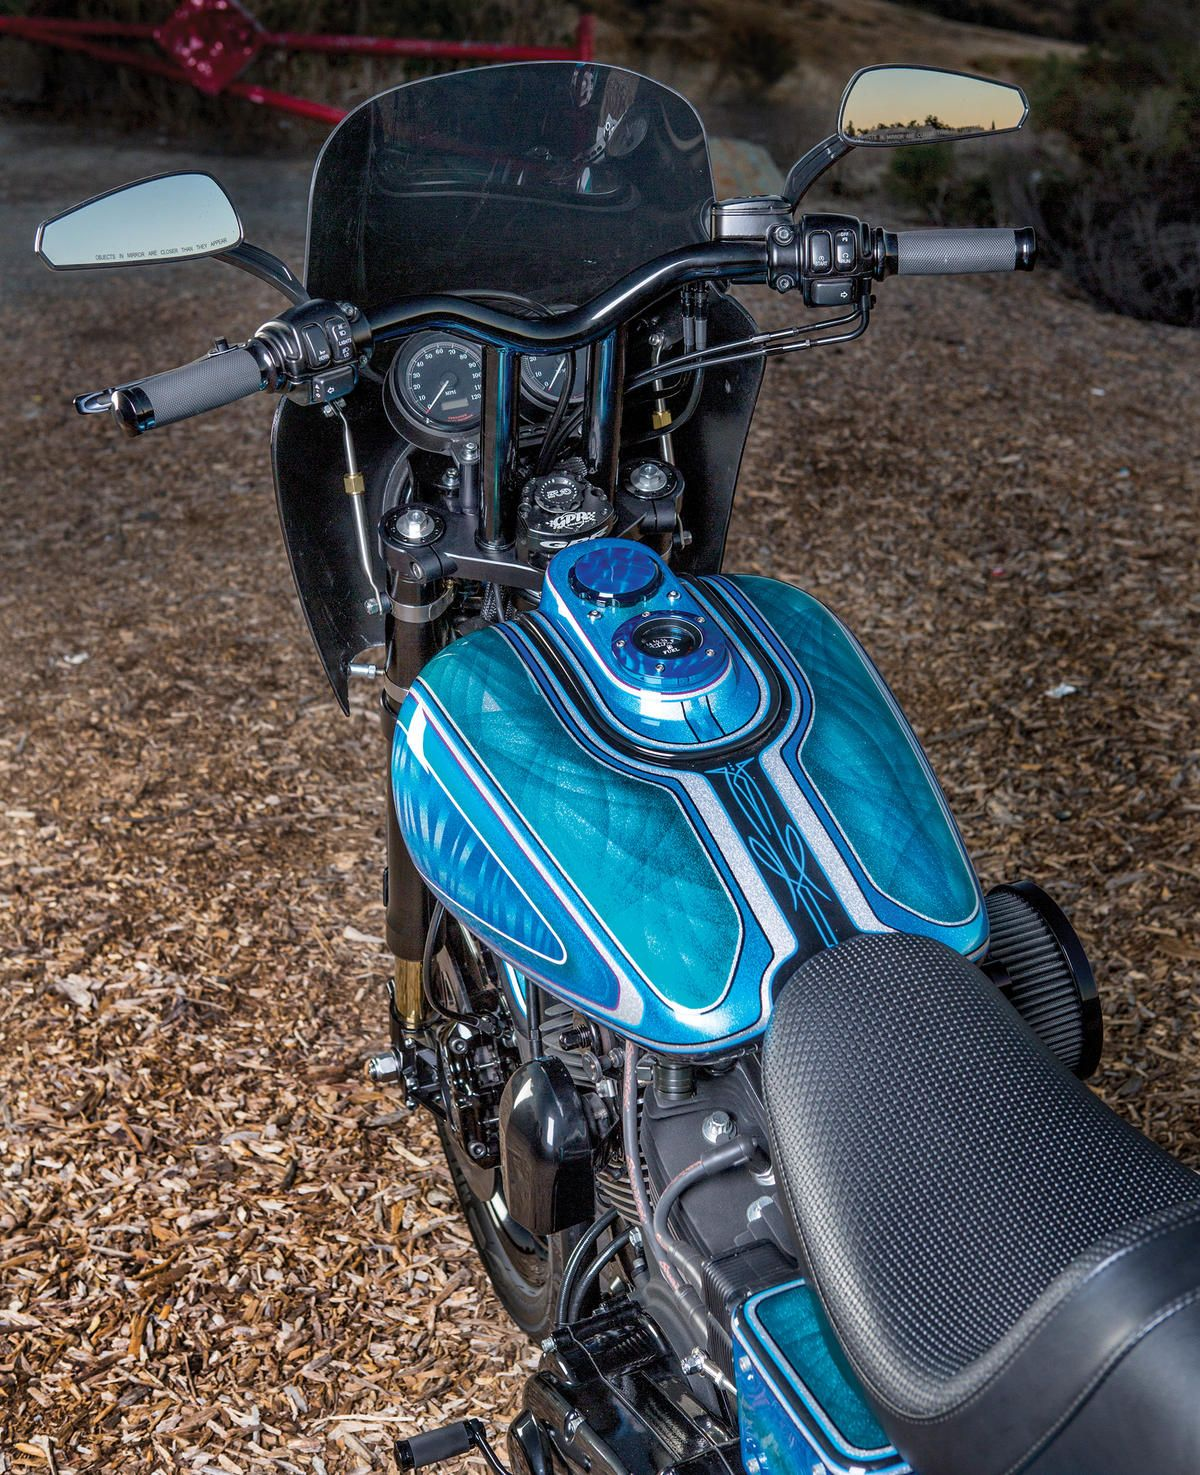 Harley-Davidson FXDX Dyna 2002 by Louis Bowlmang from San Diego